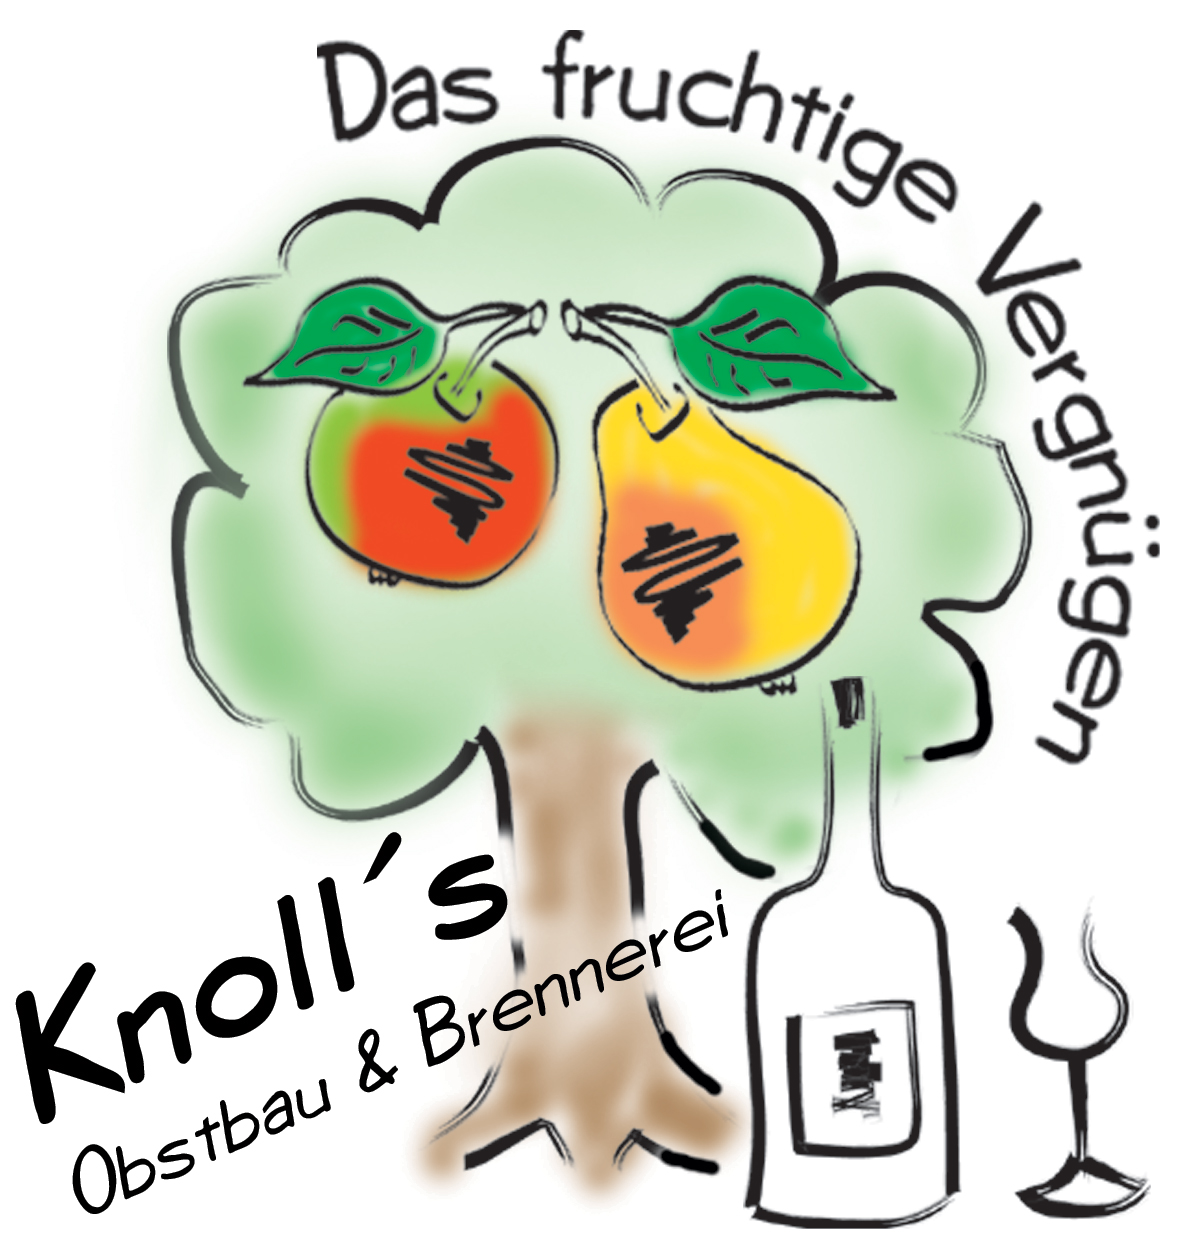 Obstbau Knoll